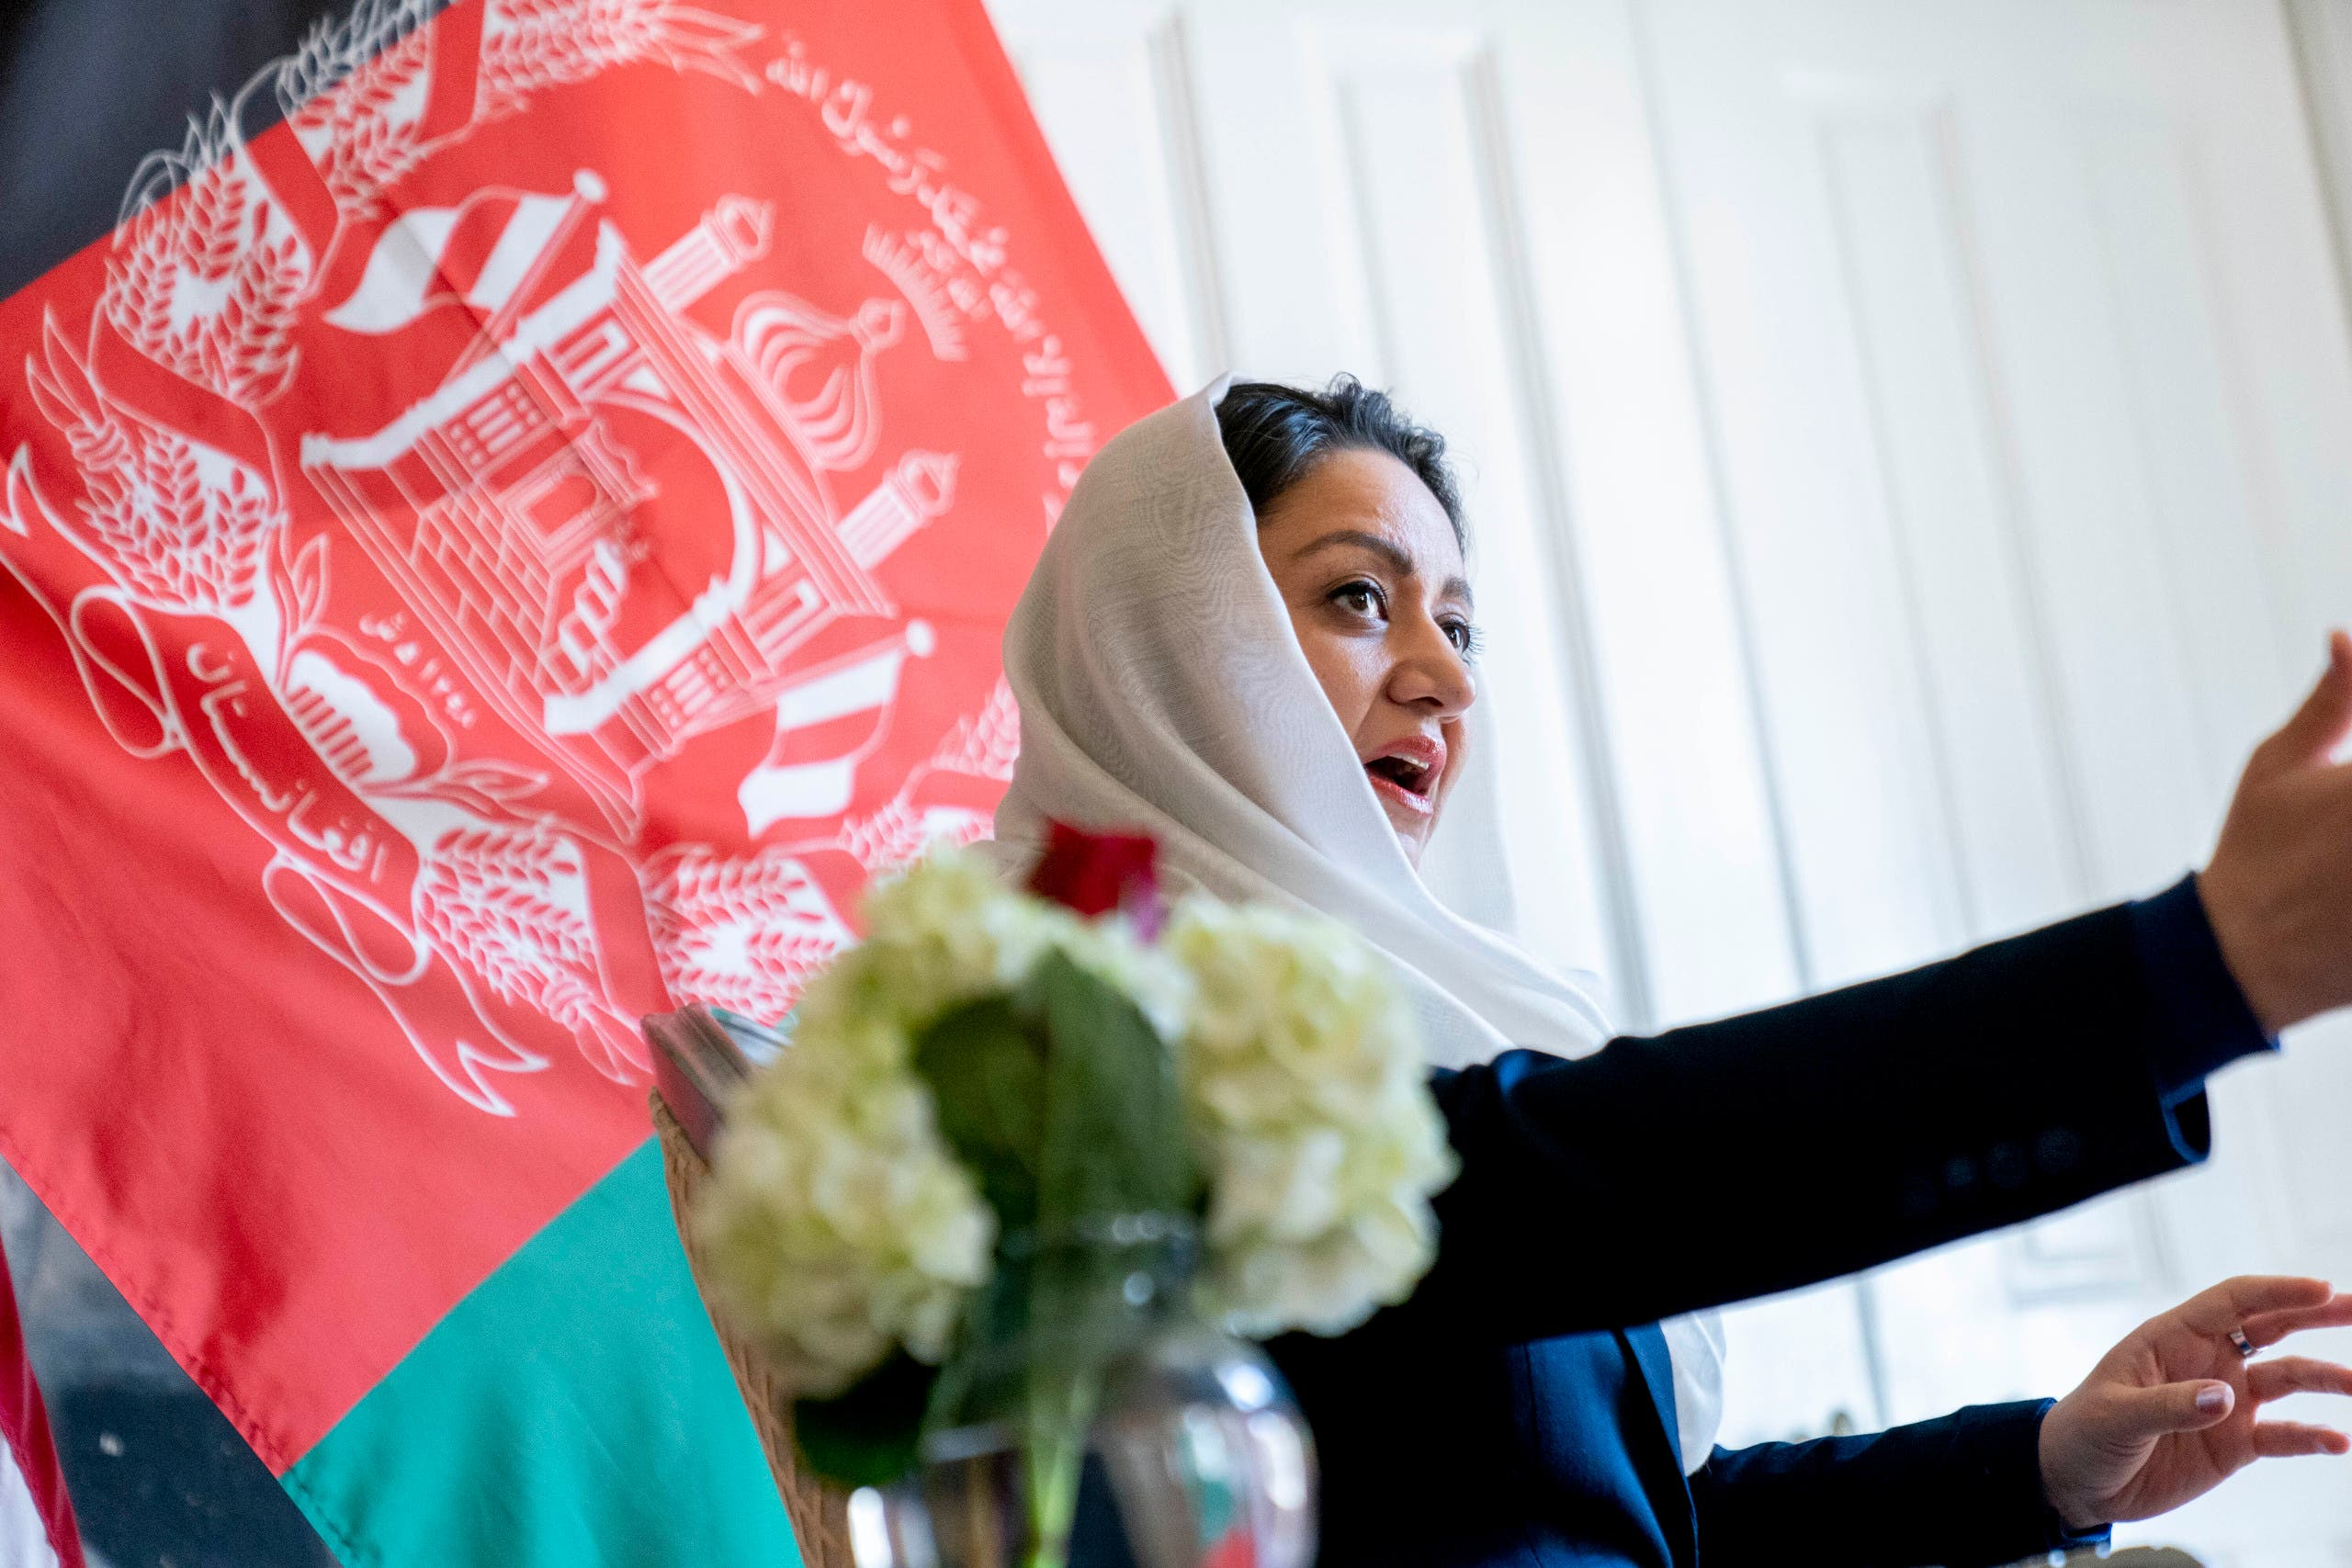 Afghan Ambassador to the U.S. Roya Rahmani speaks during an interview at the Afghanistan Embassy in Washington, Wednesday, April 21, 2021. (AP)